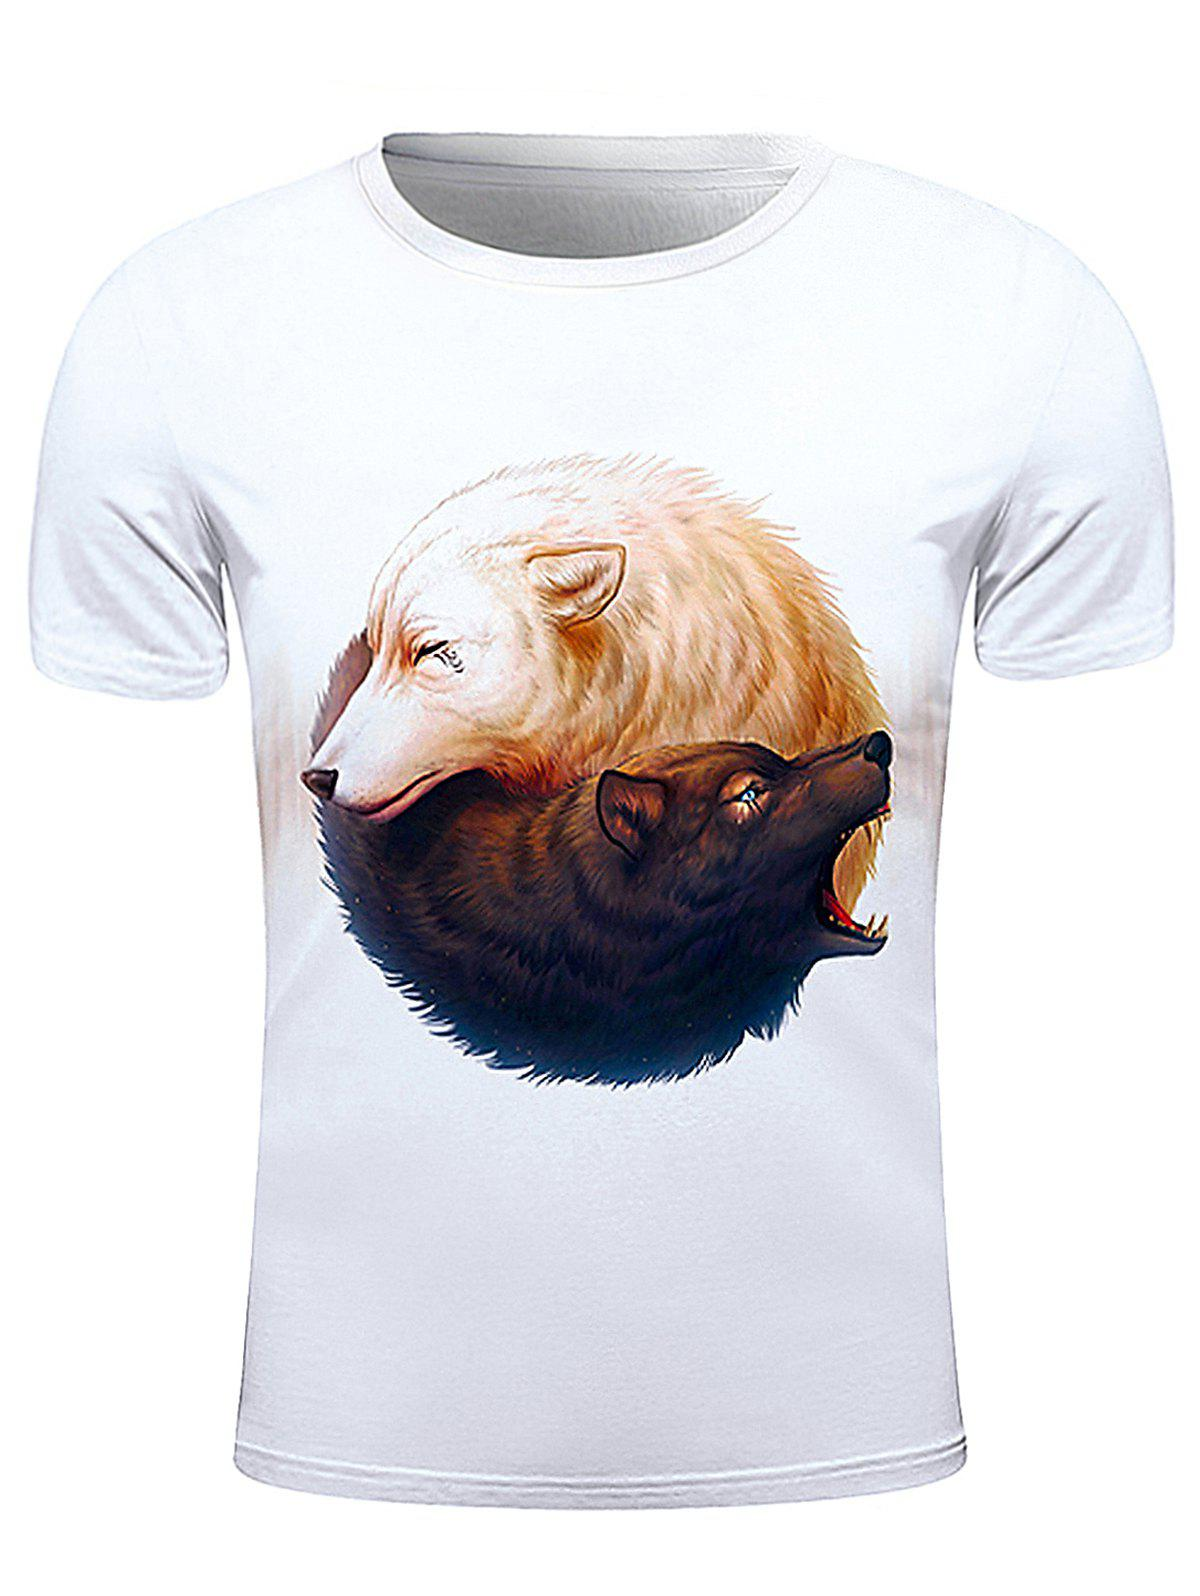 3D Wolf Print Round Neck Short Sleeve Stylish Men's T-Shirt - WHITE 2XL